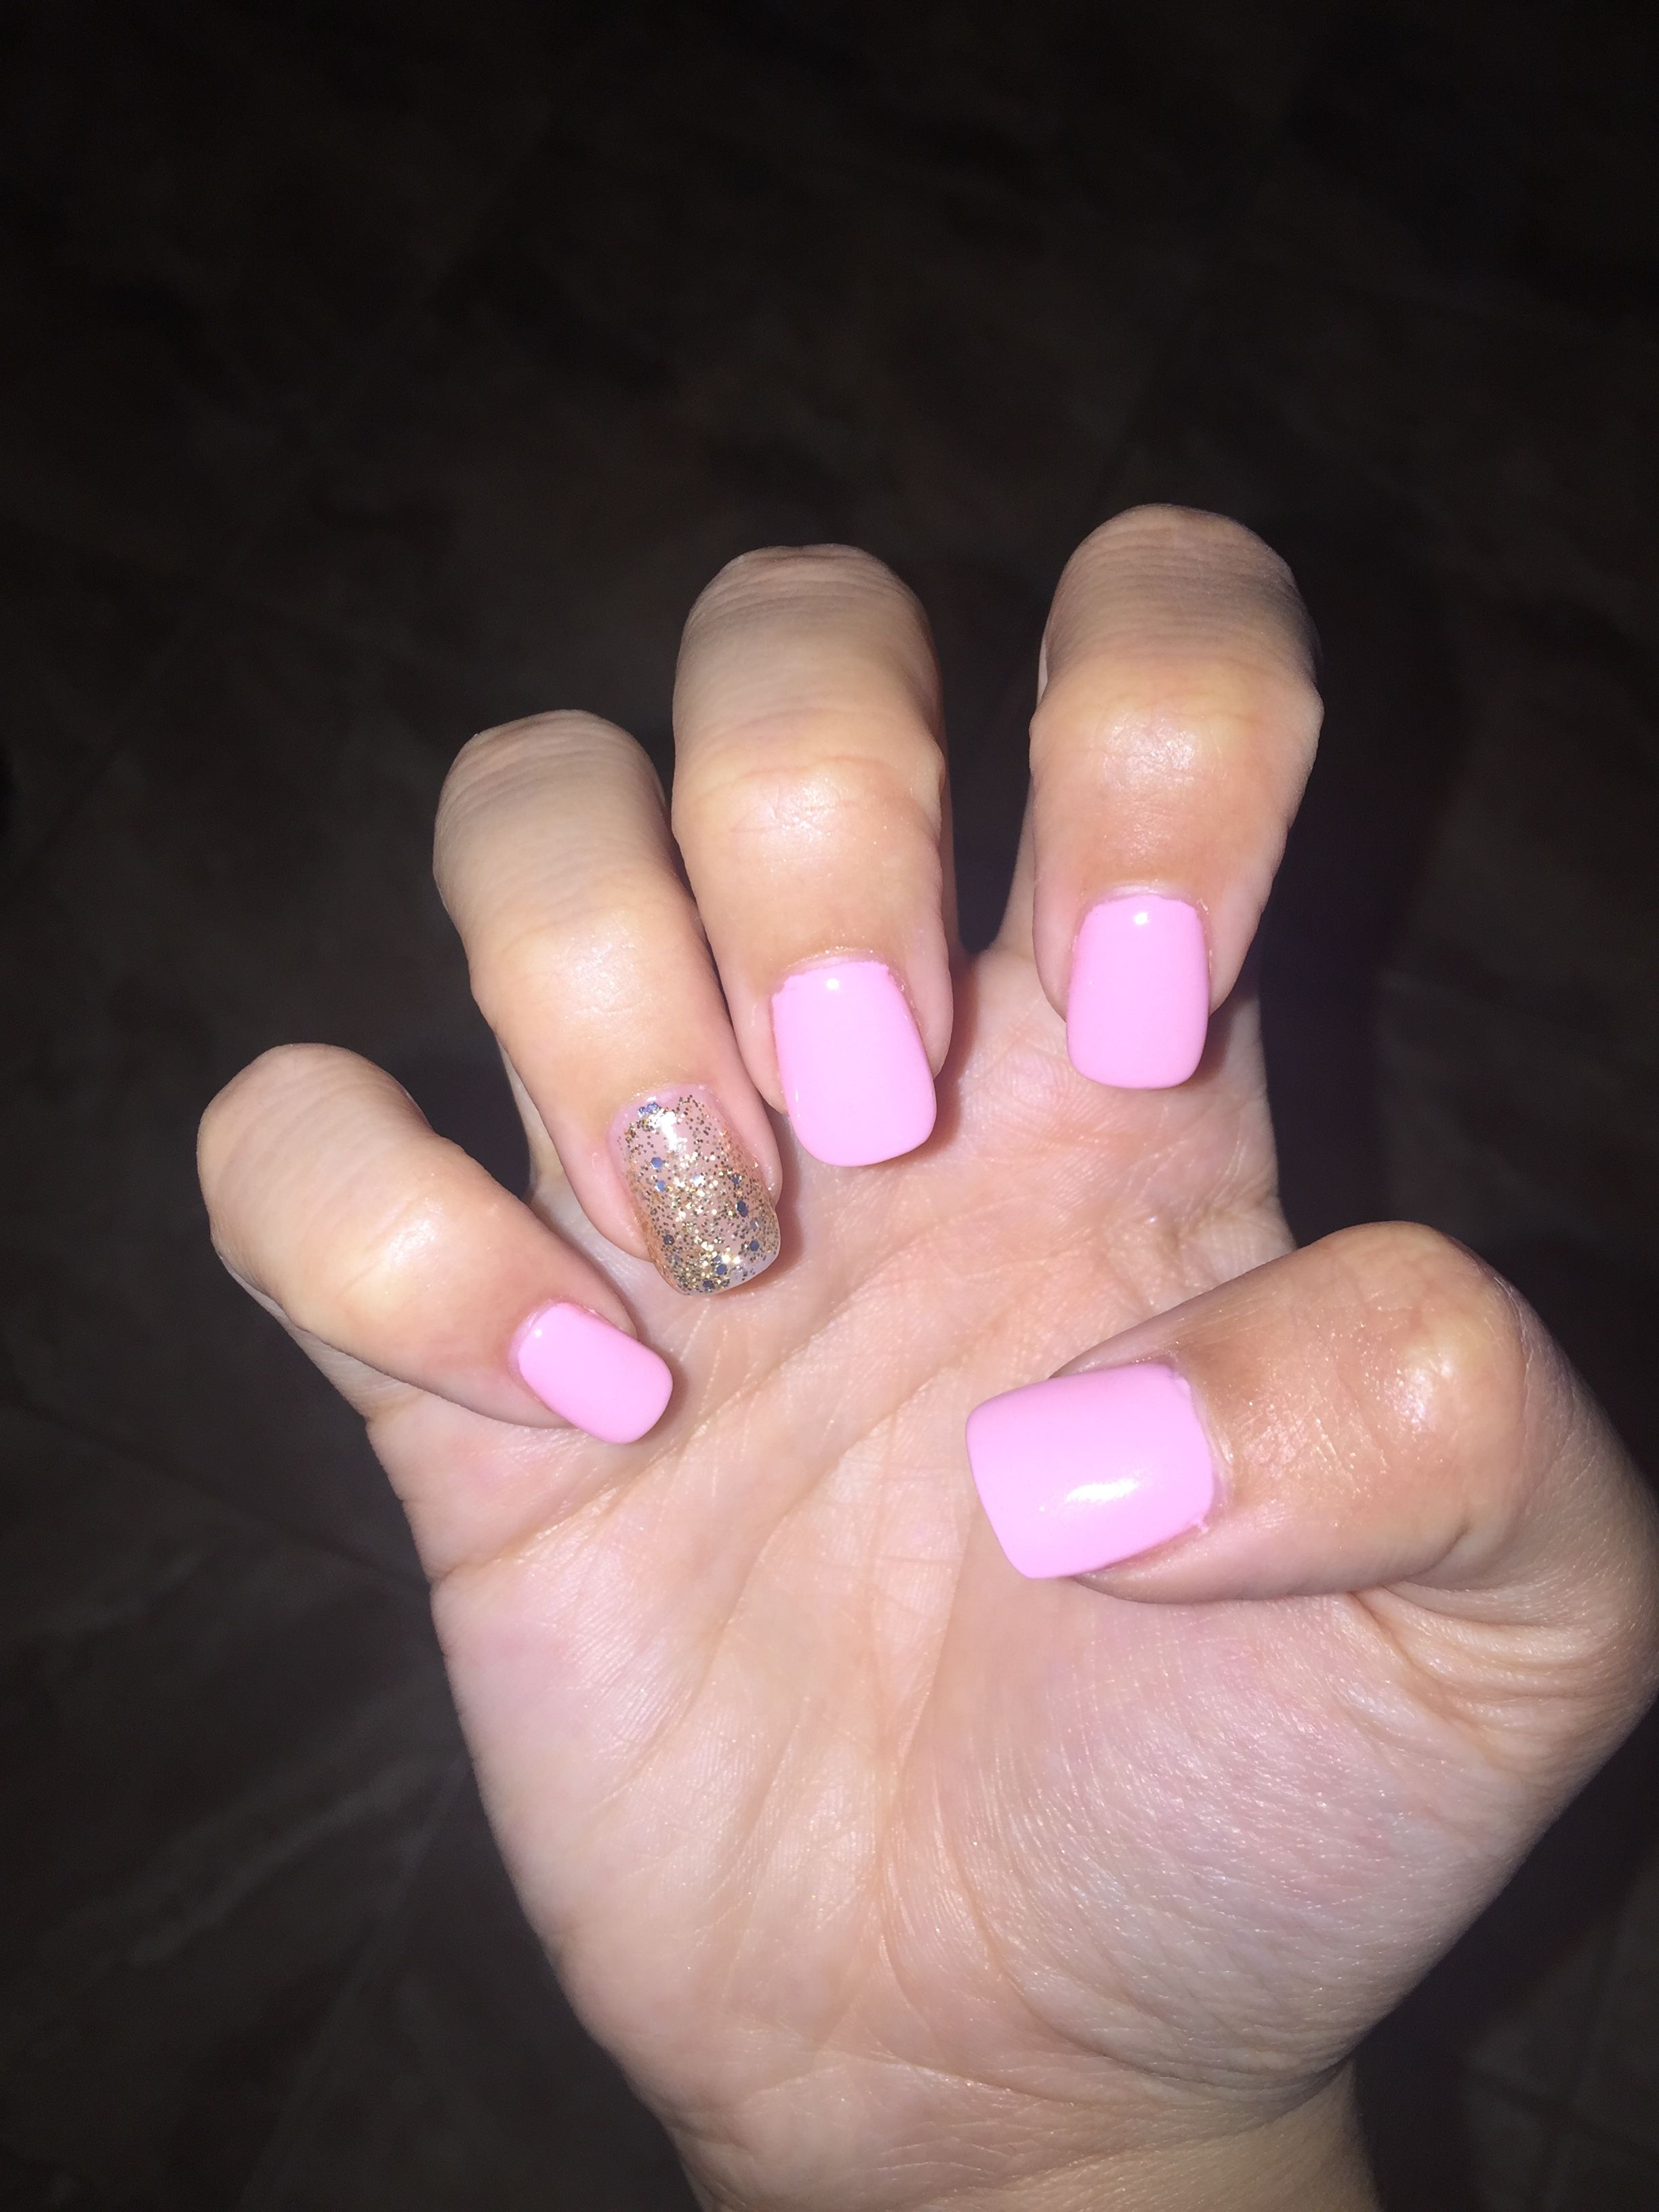 20 Blush Nails With Glitter Pictures And Ideas On Meta Networks